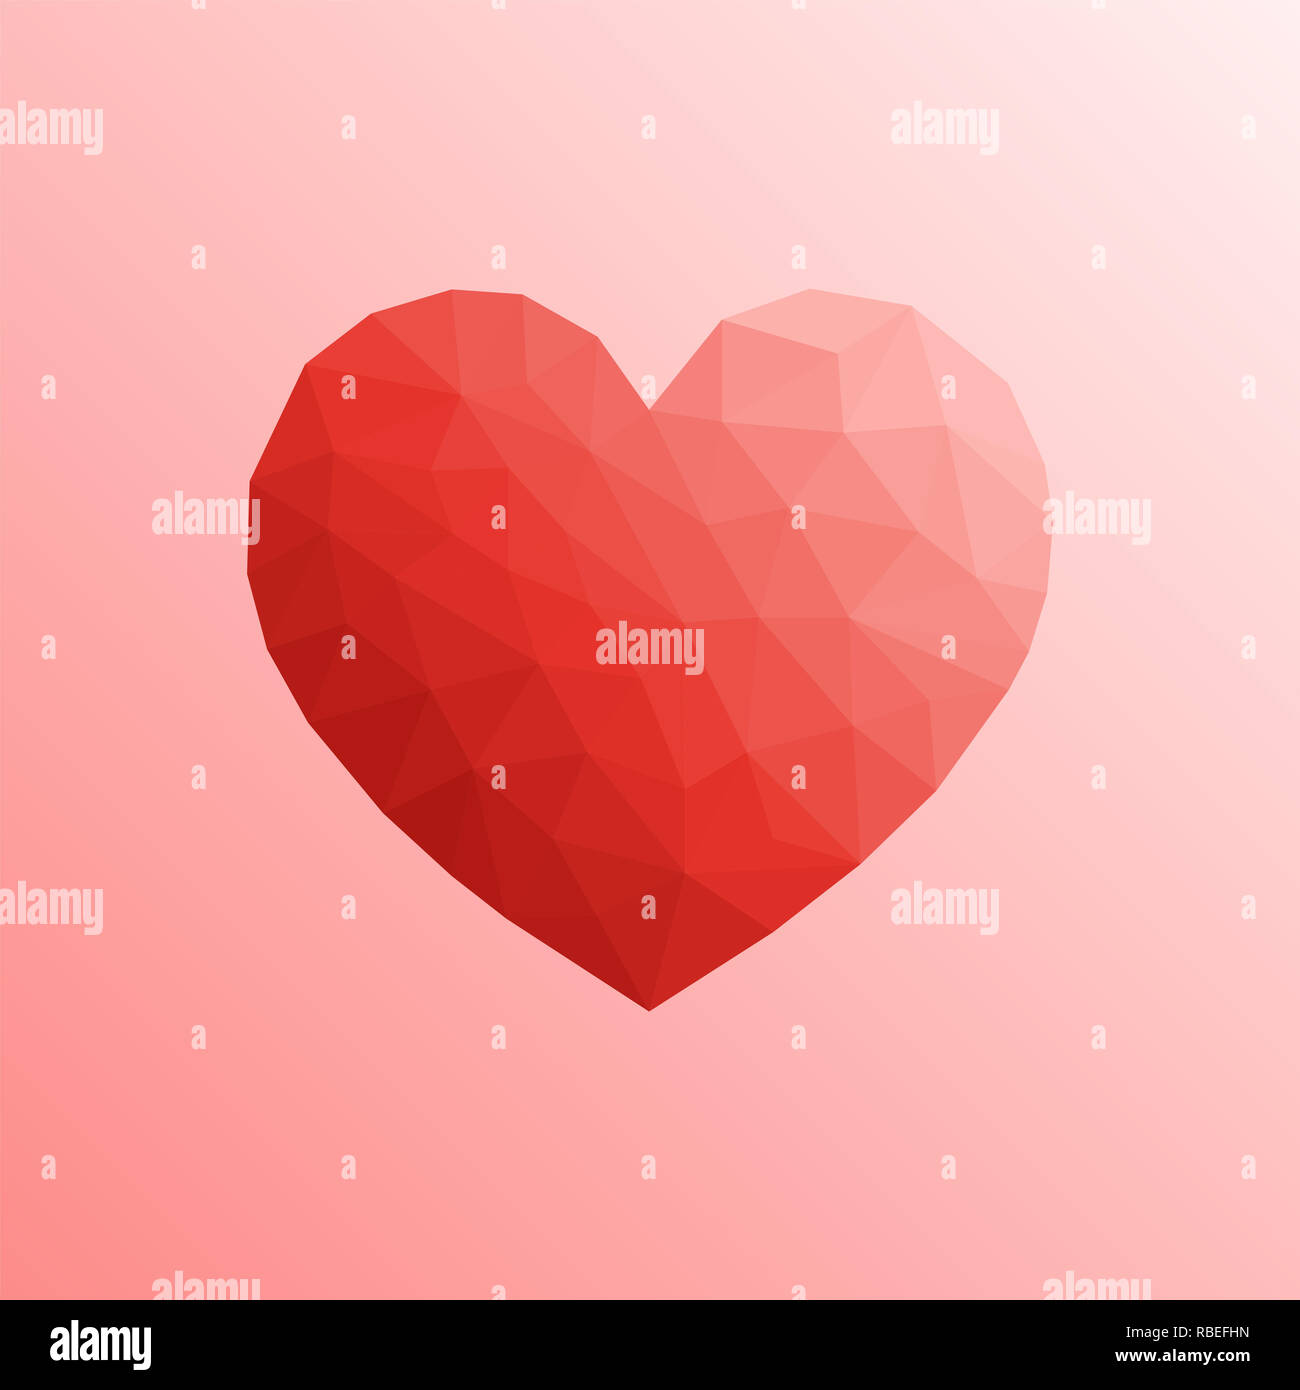 Heart in lowpoly style on bright background - Stock Image